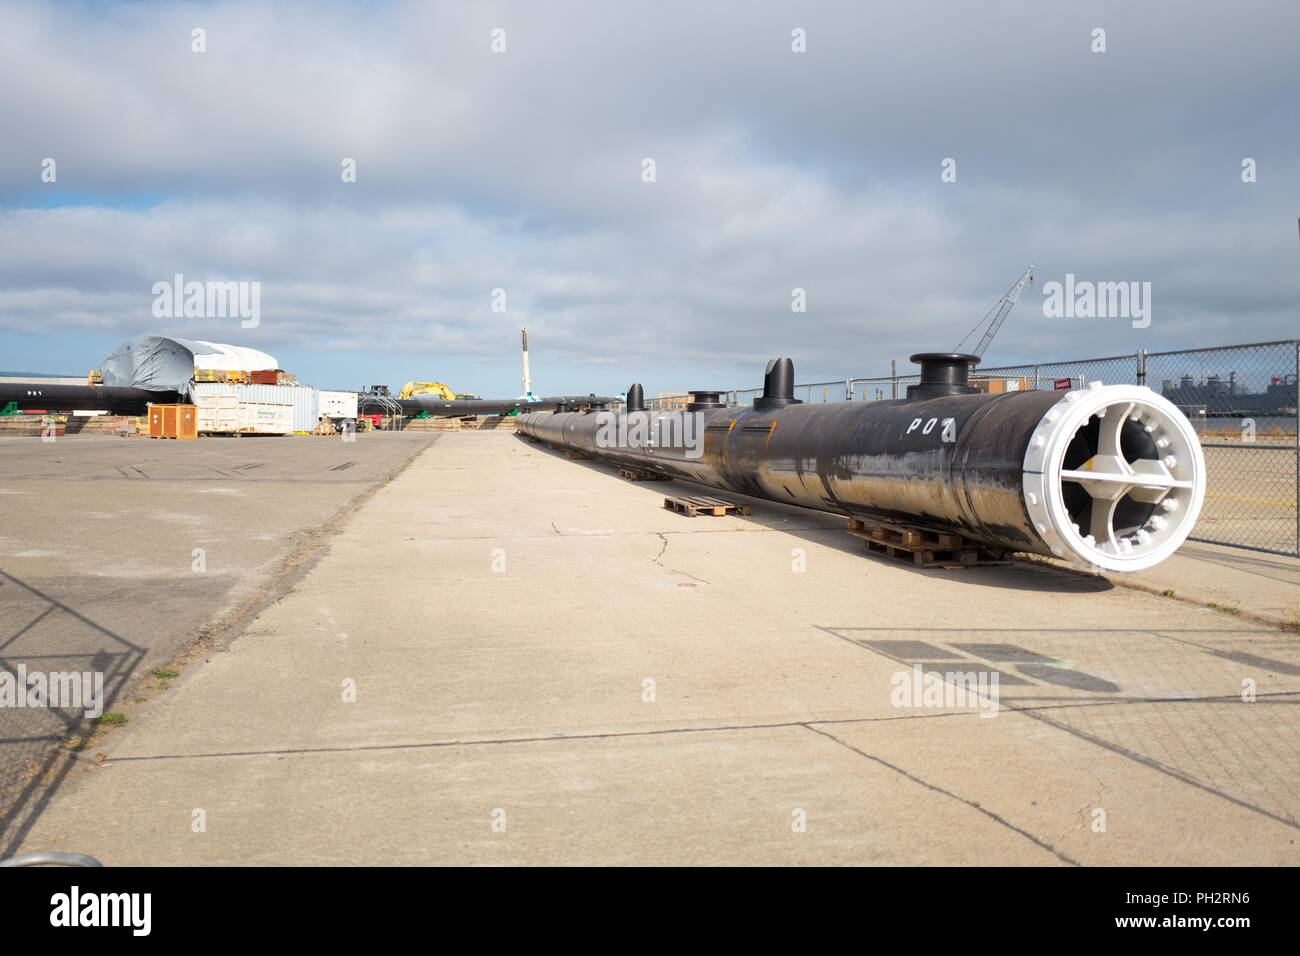 Ocean Cleanup's System 001 under assembly on Alameda Island, Alameda, California, part of a prototype technology to clean up the Great Pacific Garbage Patch, August 13, 2018. () - Stock Image